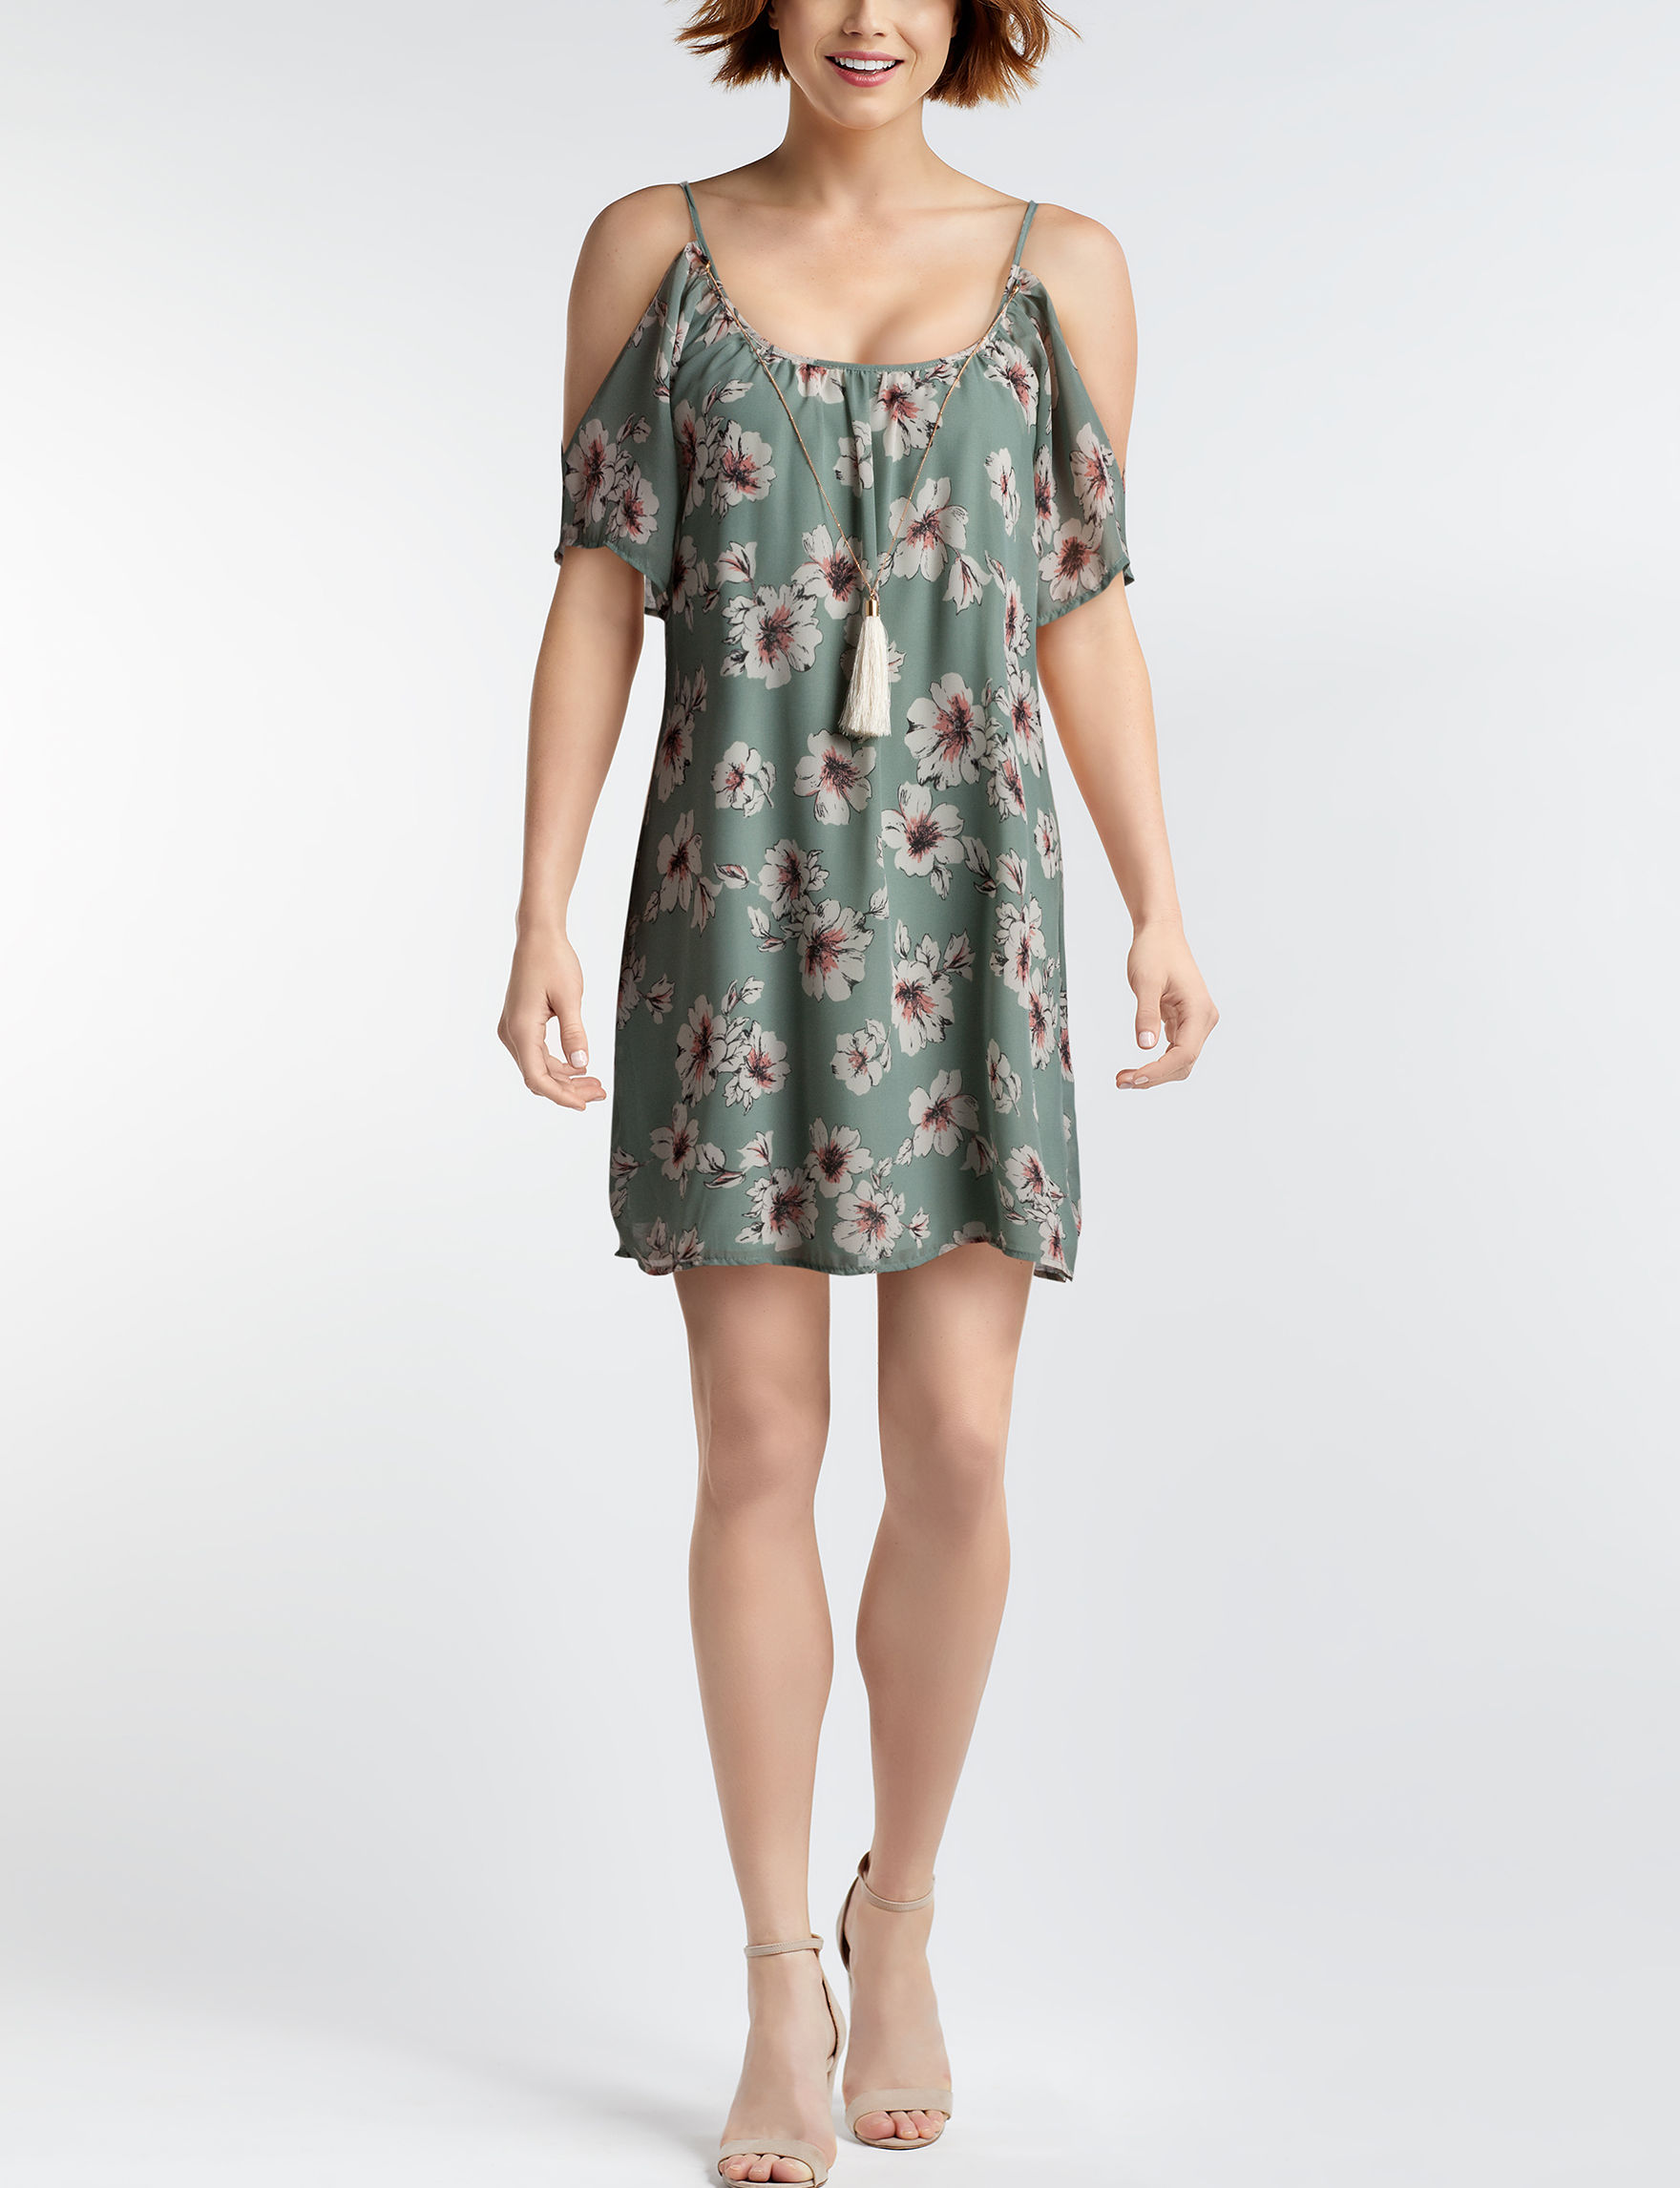 Bailey Blue Green Everyday & Casual Shift Dresses